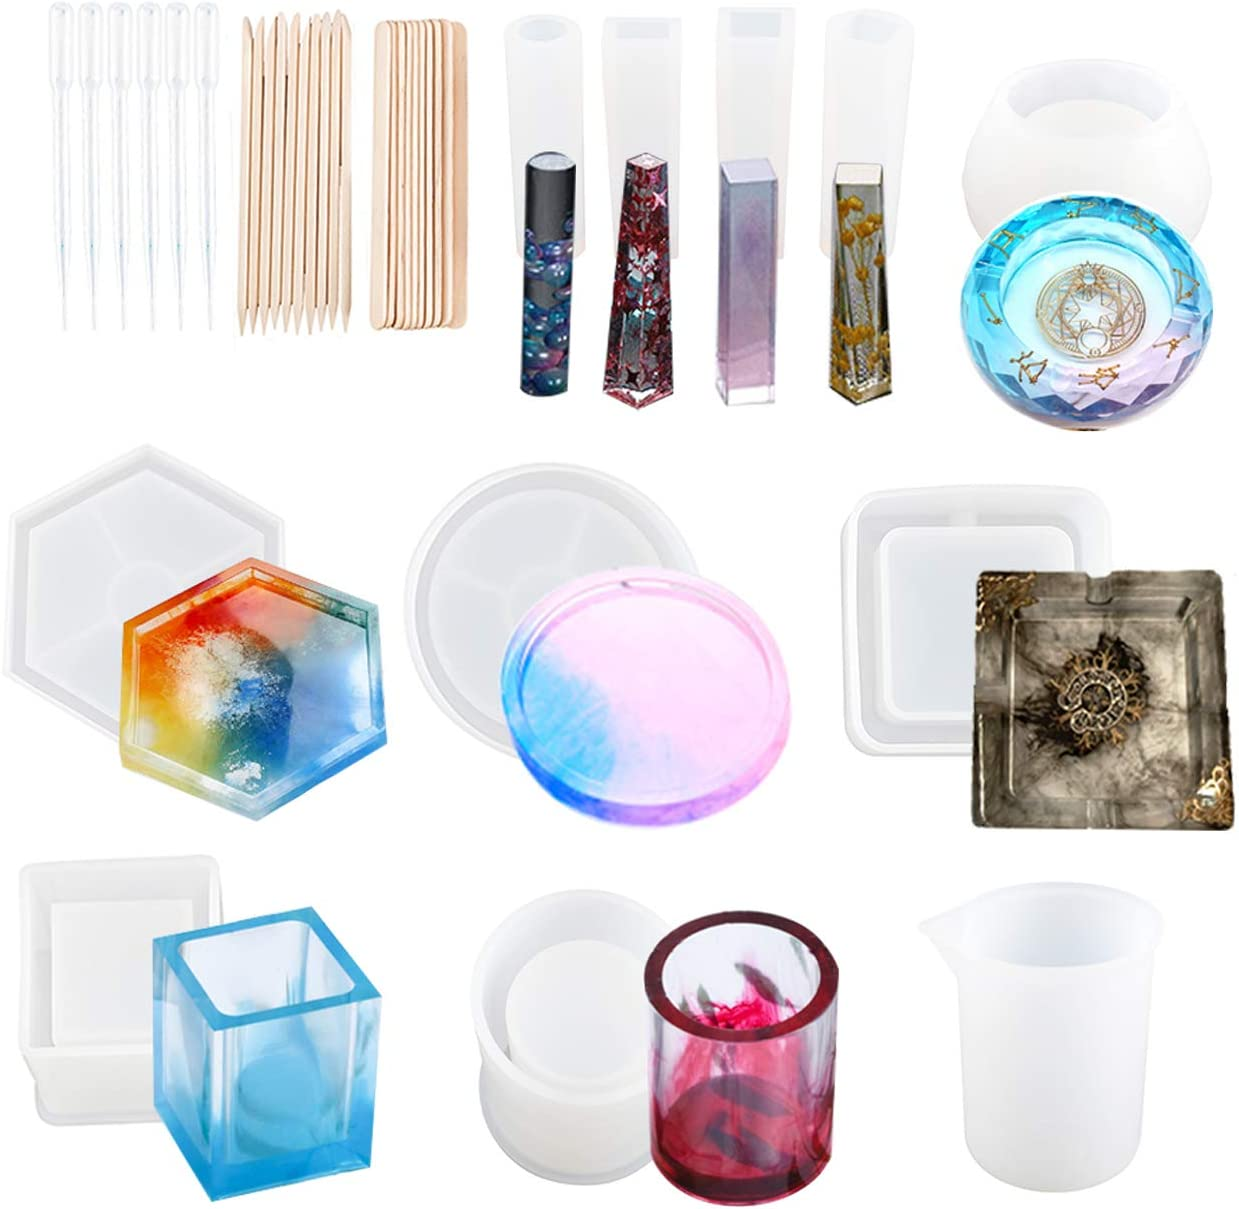 Free Shipping New Toolly 37Pcs Special price for a limited time Silicone Molds Art Resin Casting Epoxy